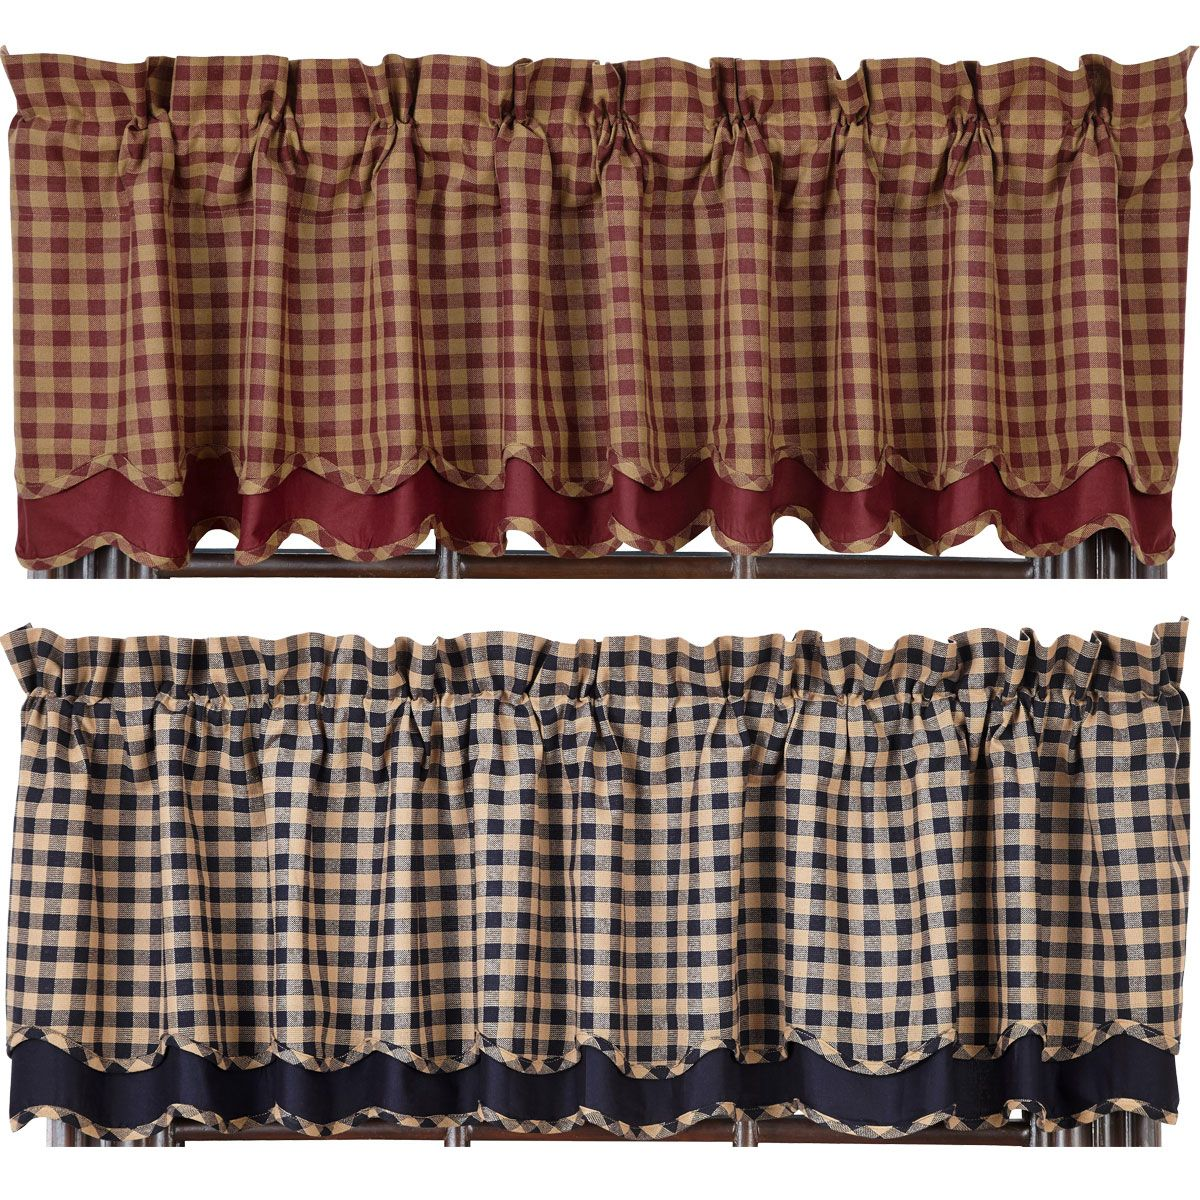 Burgundy Check Scalloped Lined Layered Valance